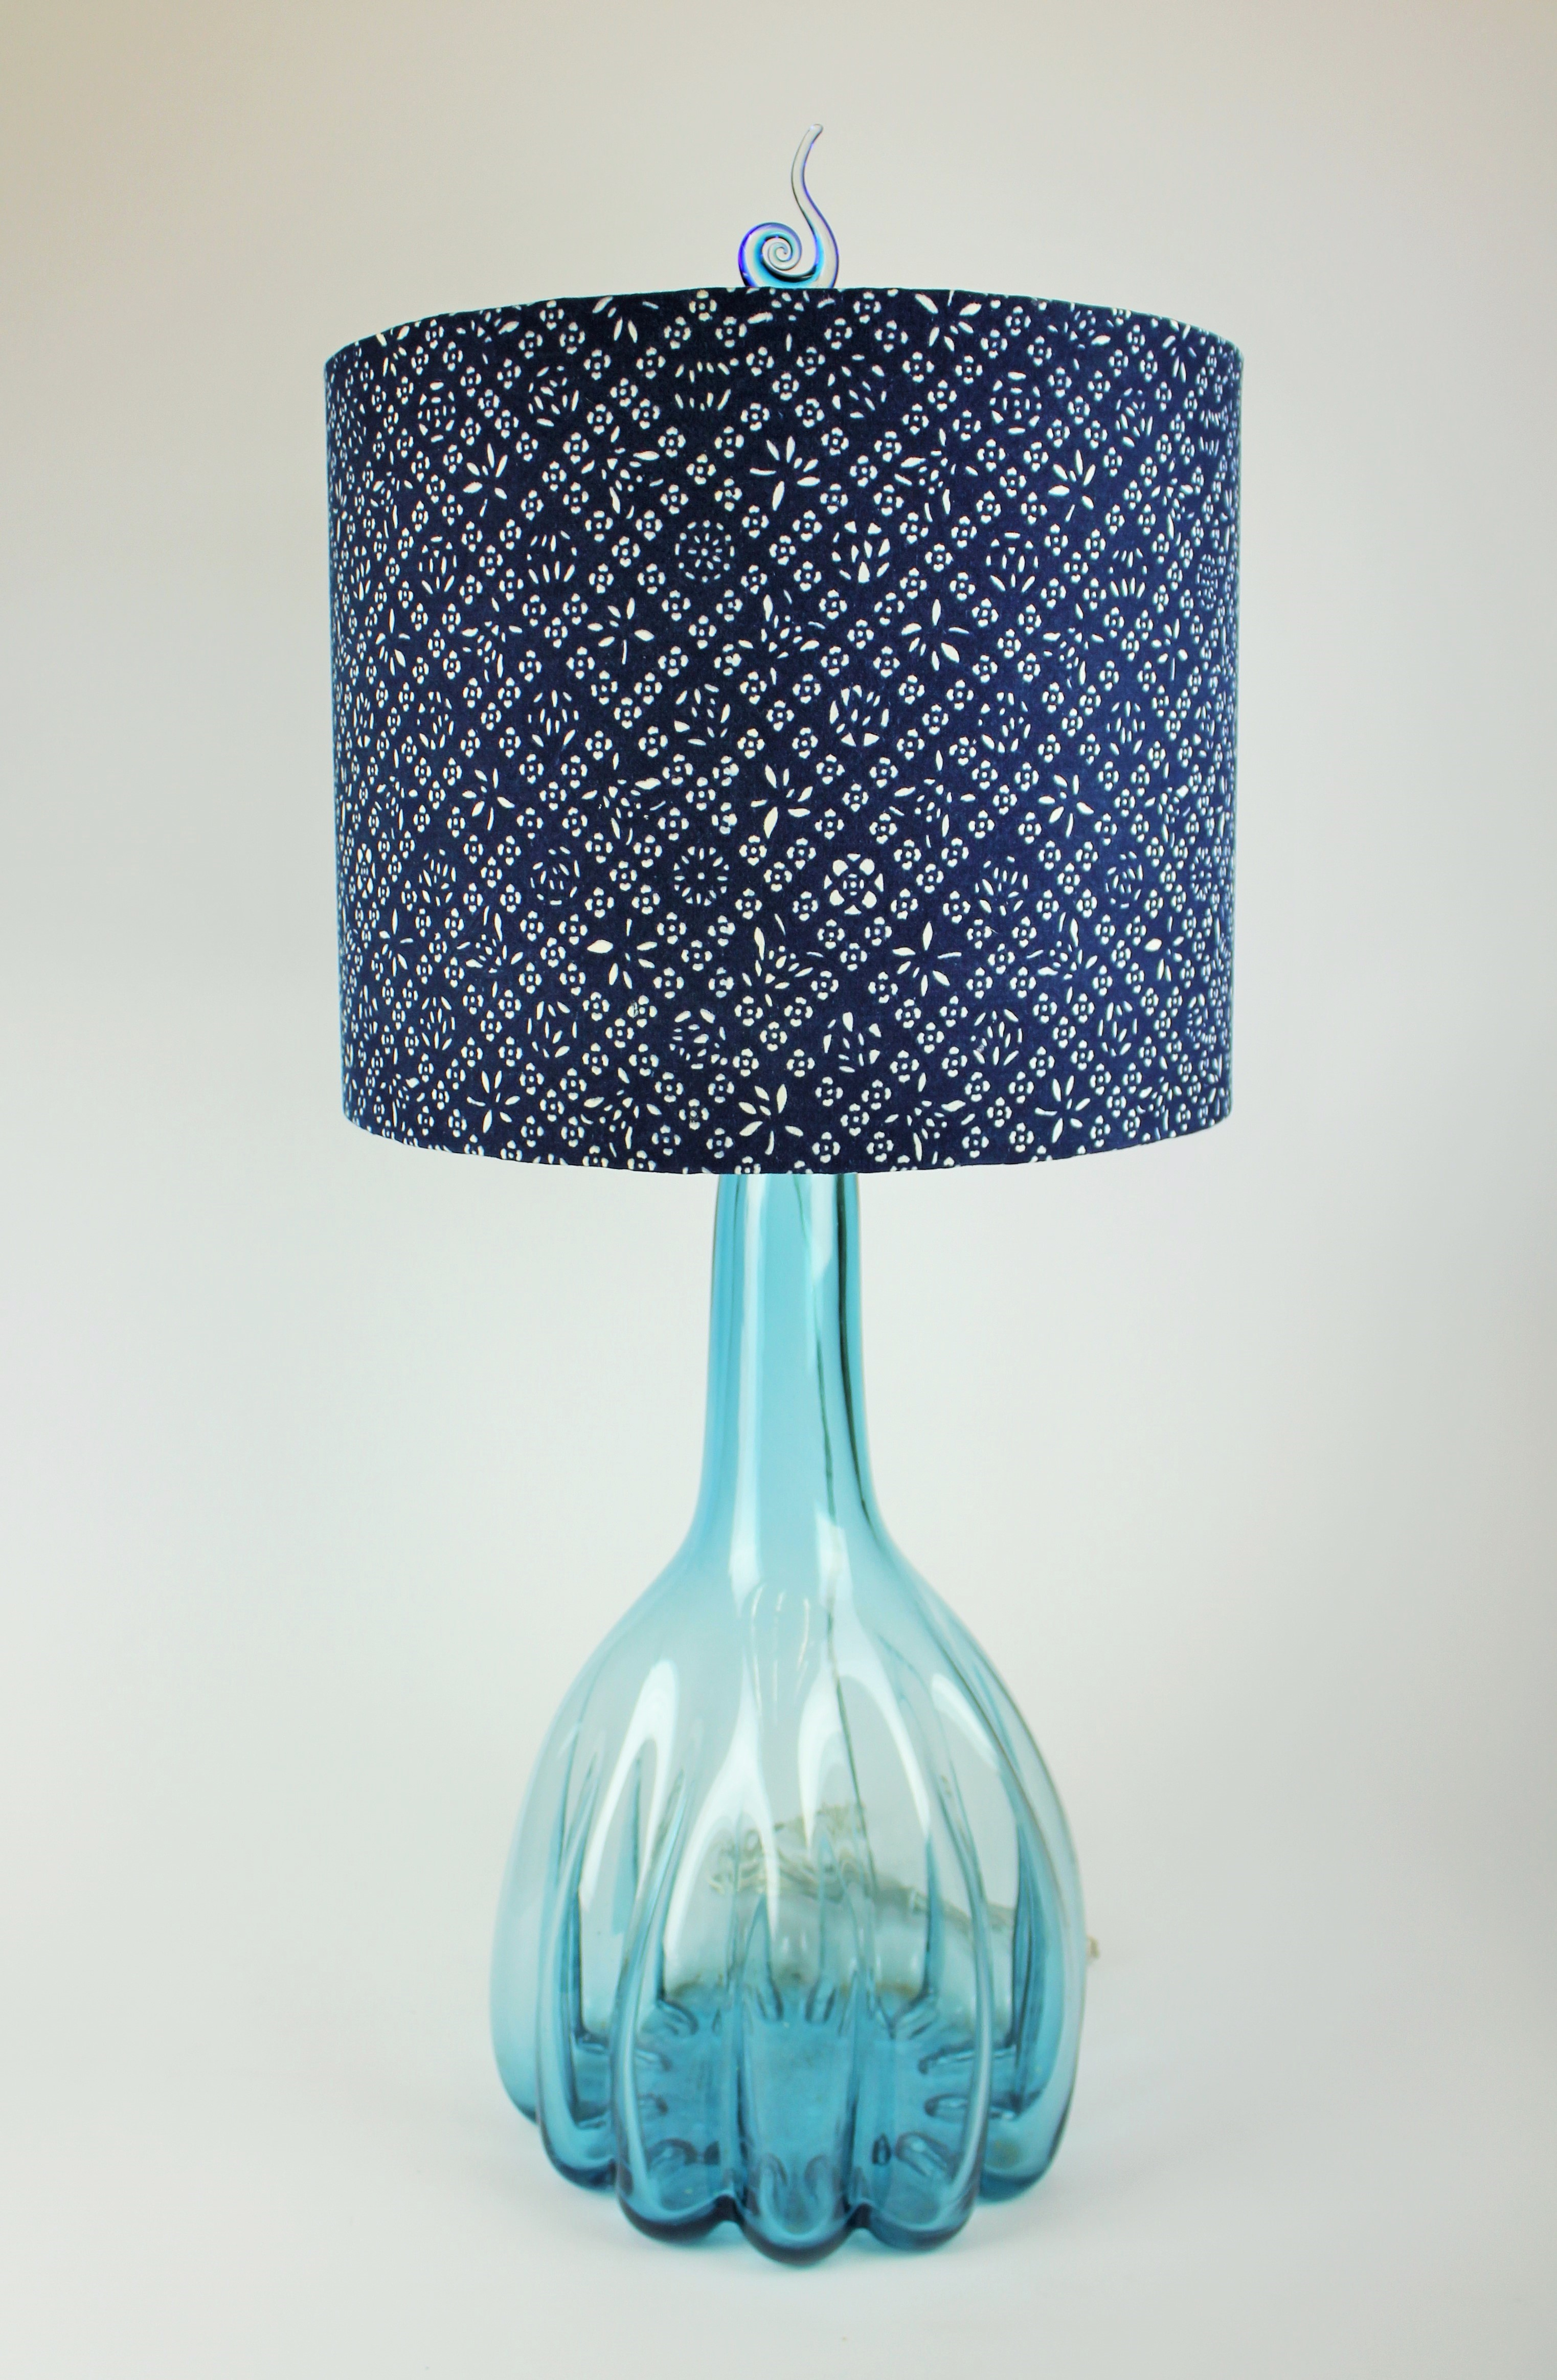 Lamp shade specialties 10578 w pico blvd los angeles ca 90064 brands chandelier cleaning chandelier repairs custom lampshades custom lamps interior design matching lamp accessories lamp repairs vintage lamp arubaitofo Image collections